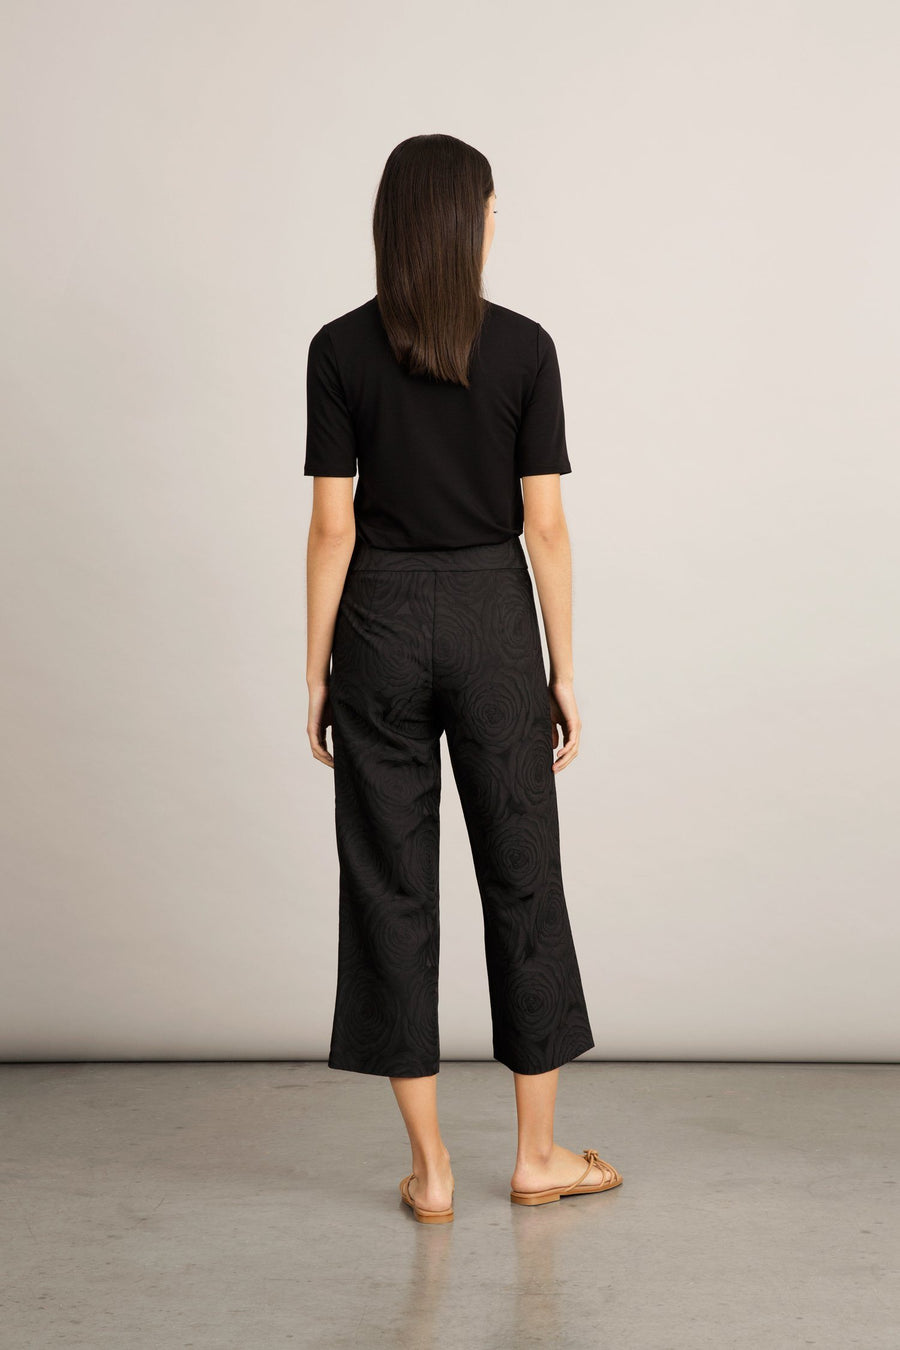 BATALLA TROUSERS - BLACK JACQUARD Trousers Stylein